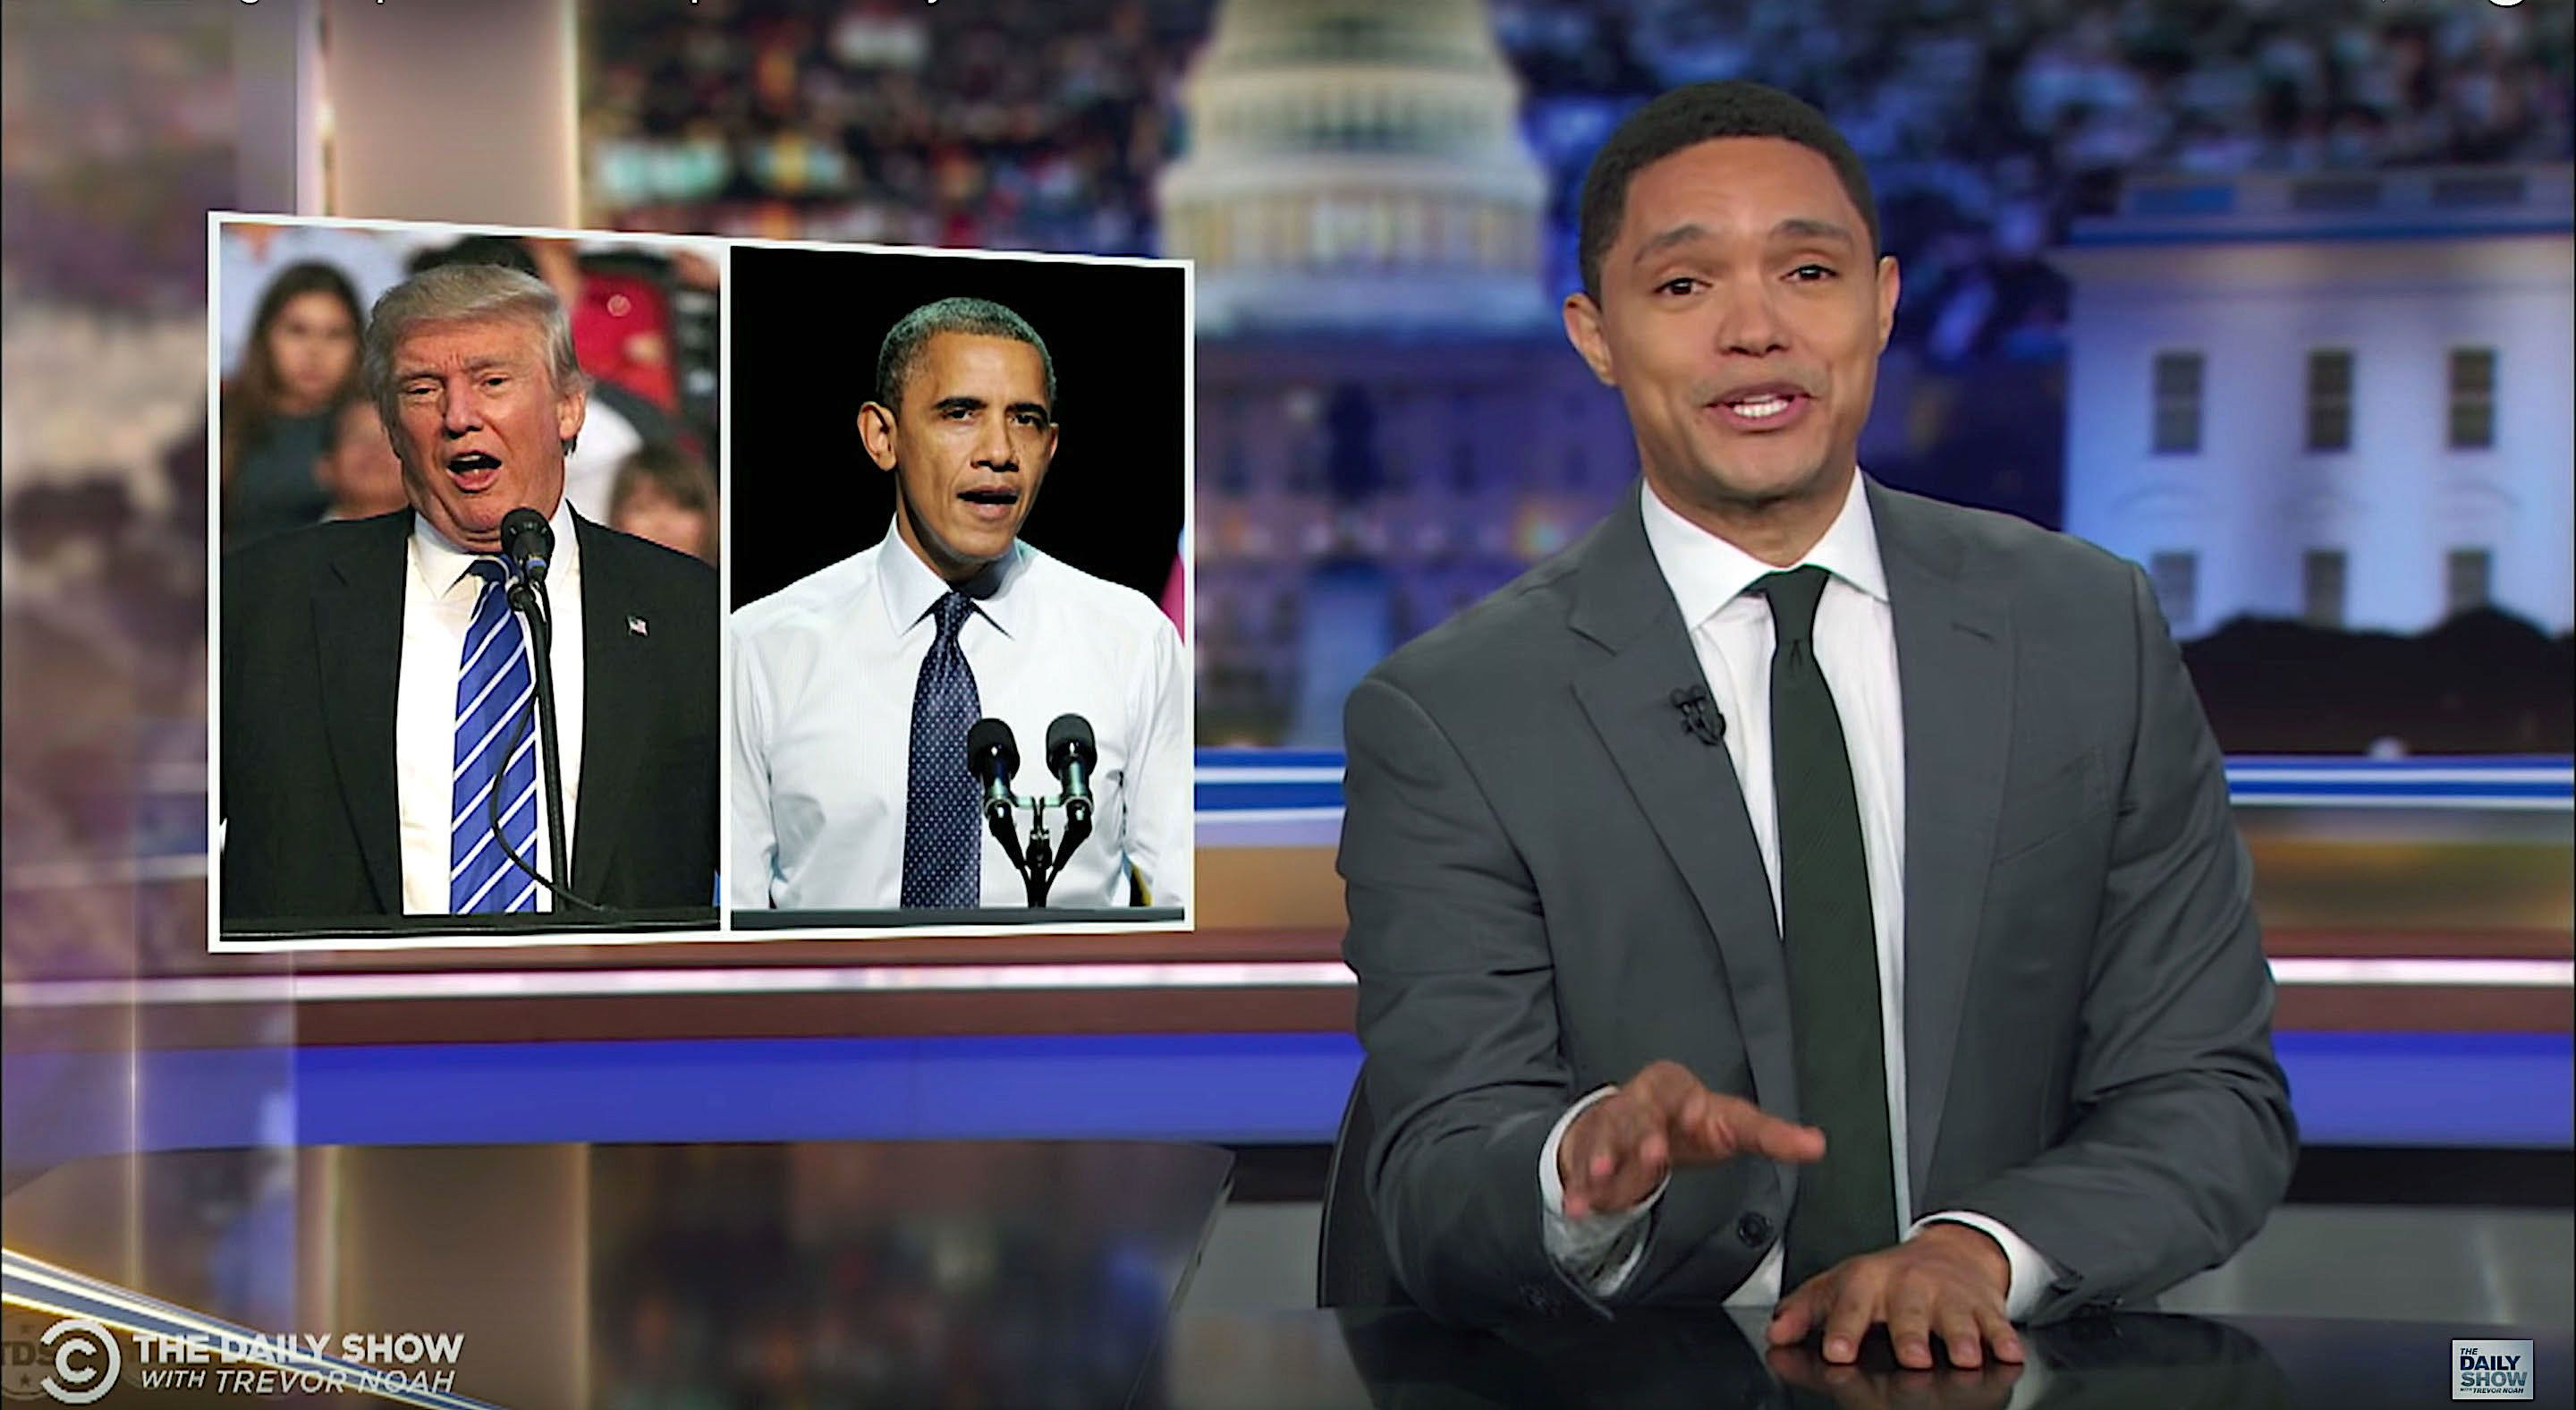 Obama vs. Trump: Trevor Noah Makes The Call